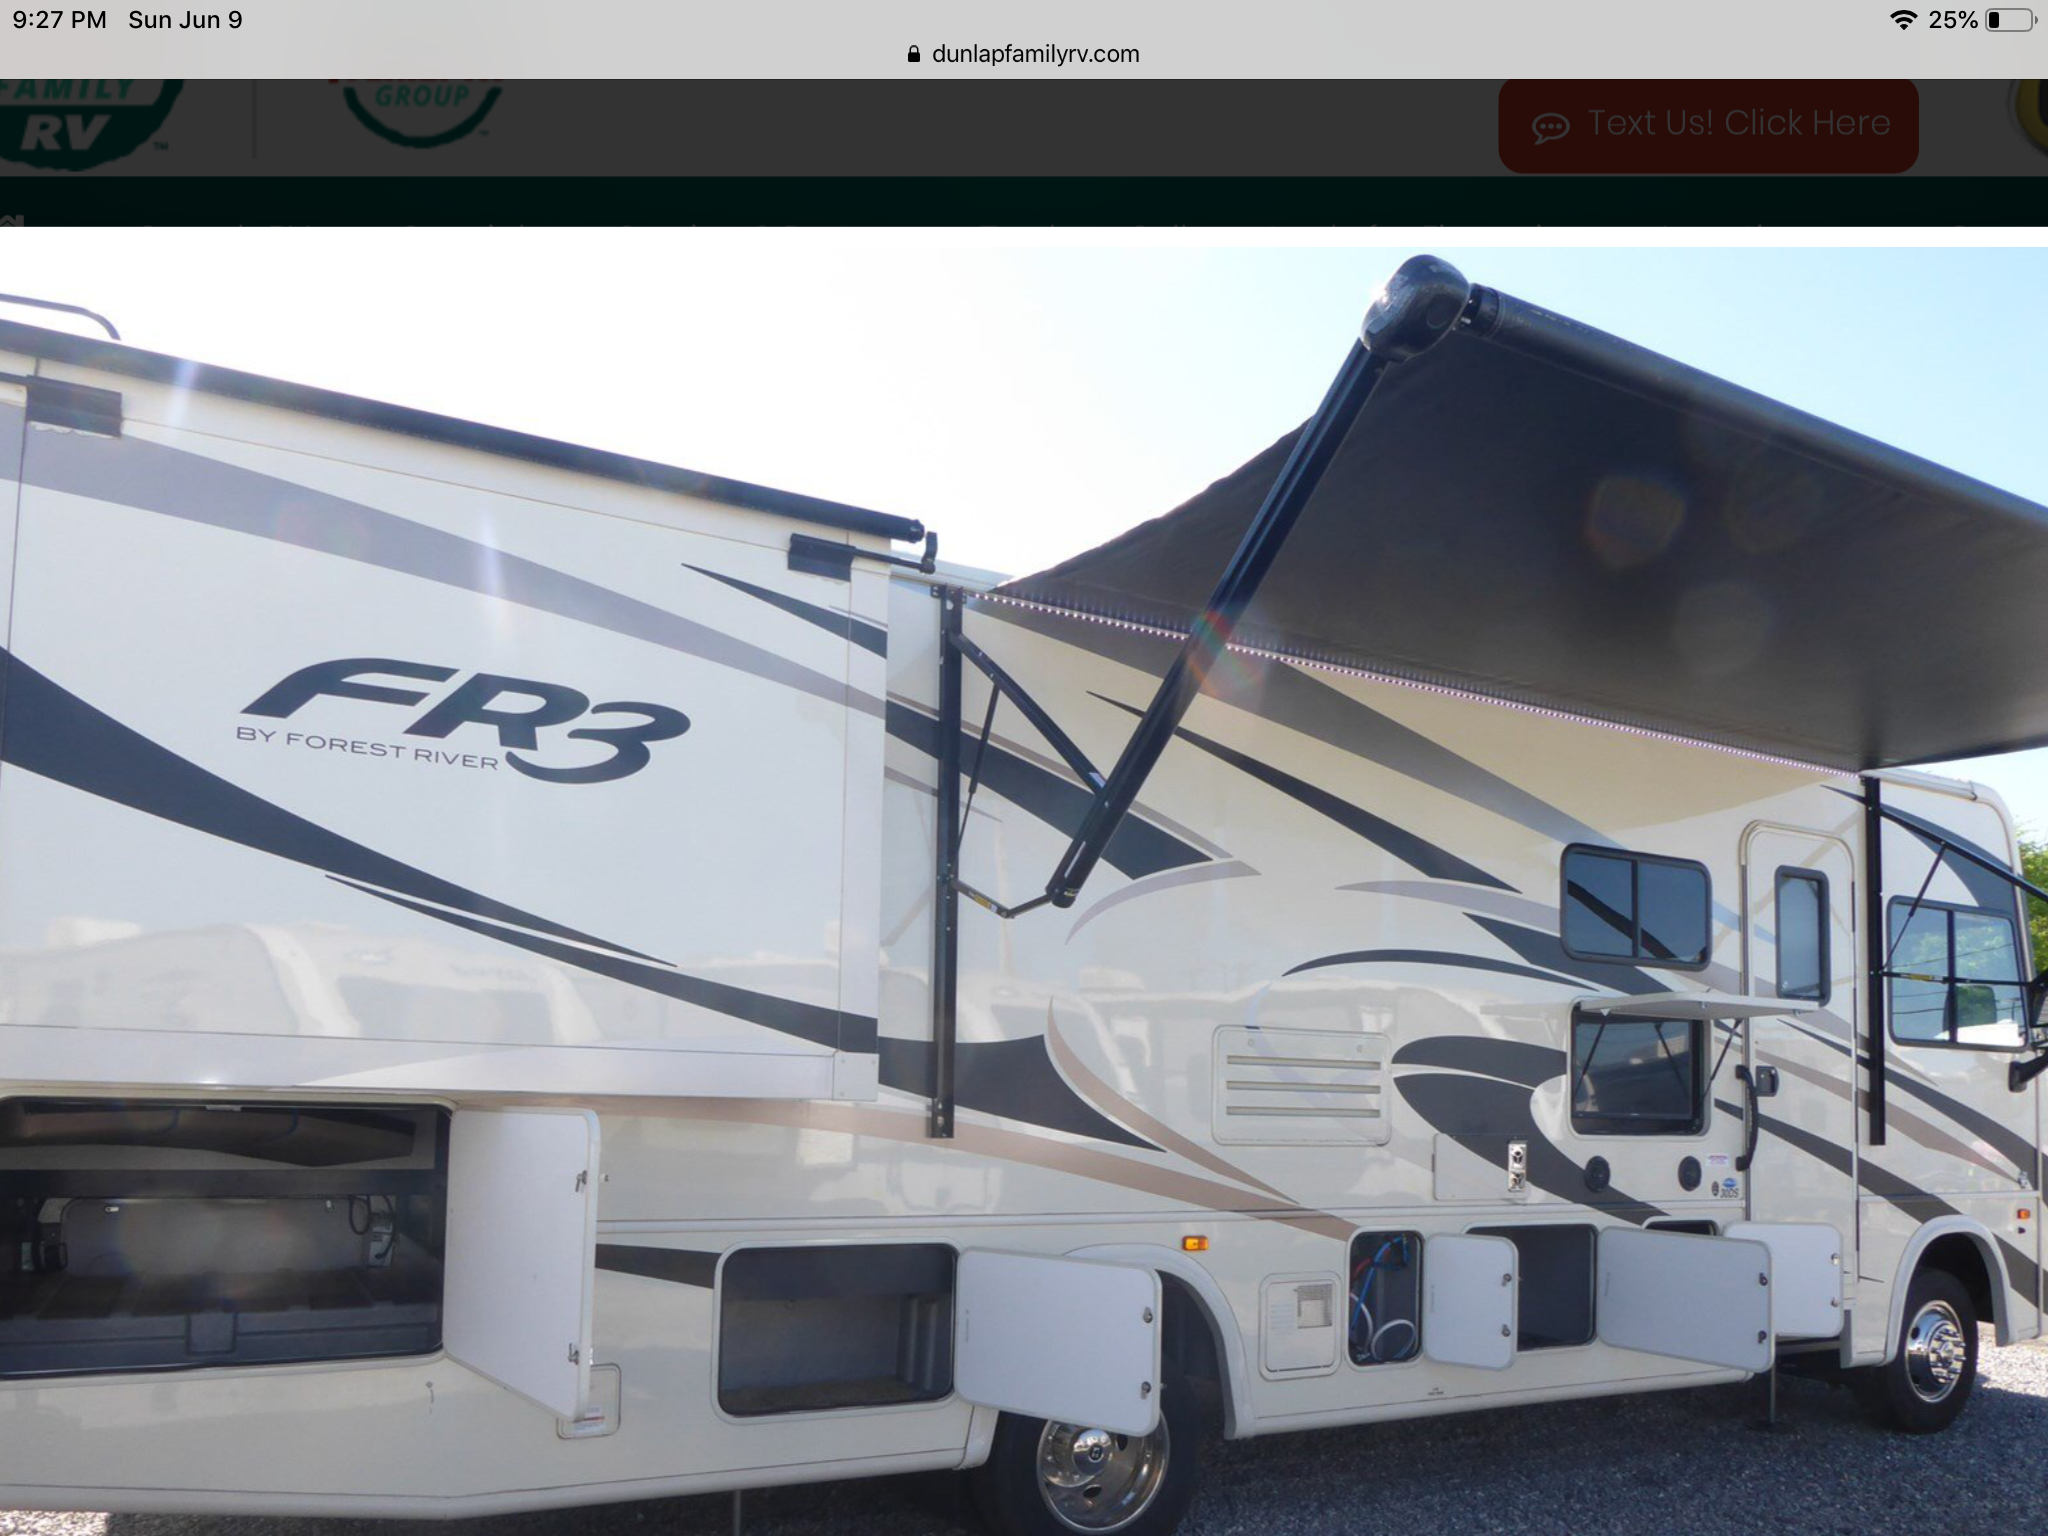 FR3 exterior with view of awning and tv.. Forest River Fr3 2017